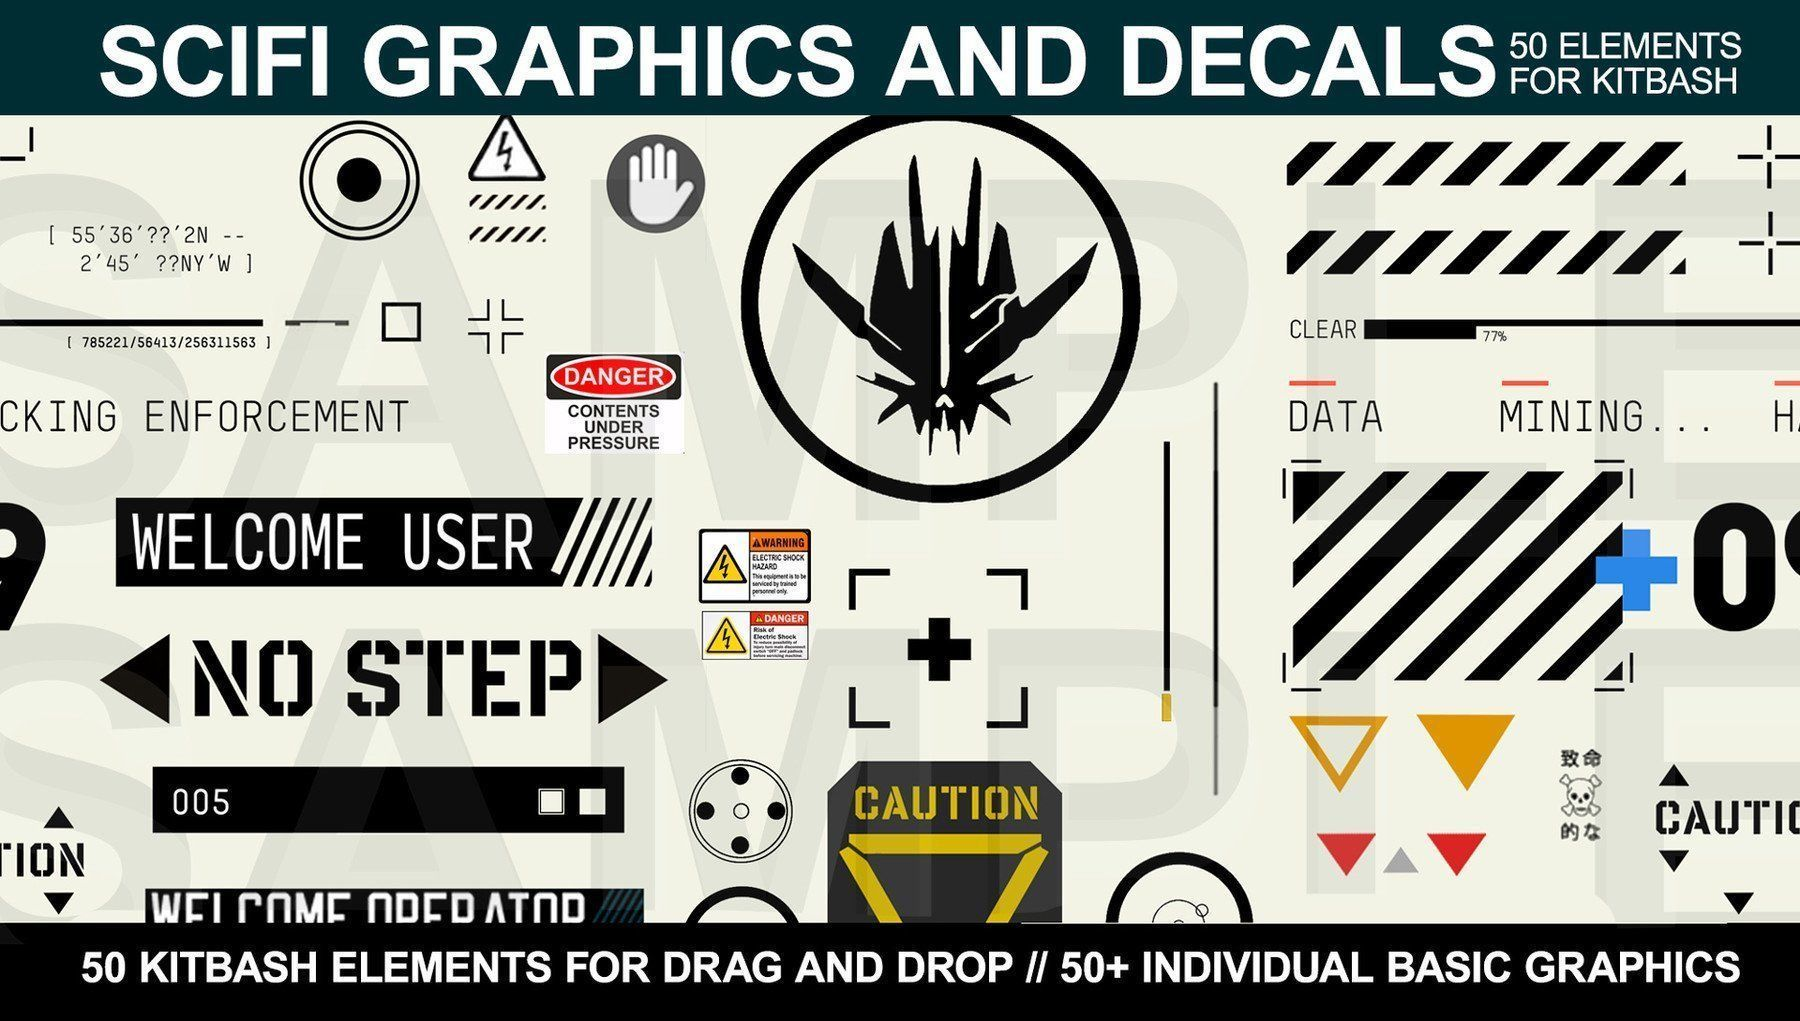 Sci-fi Graphics and Decals